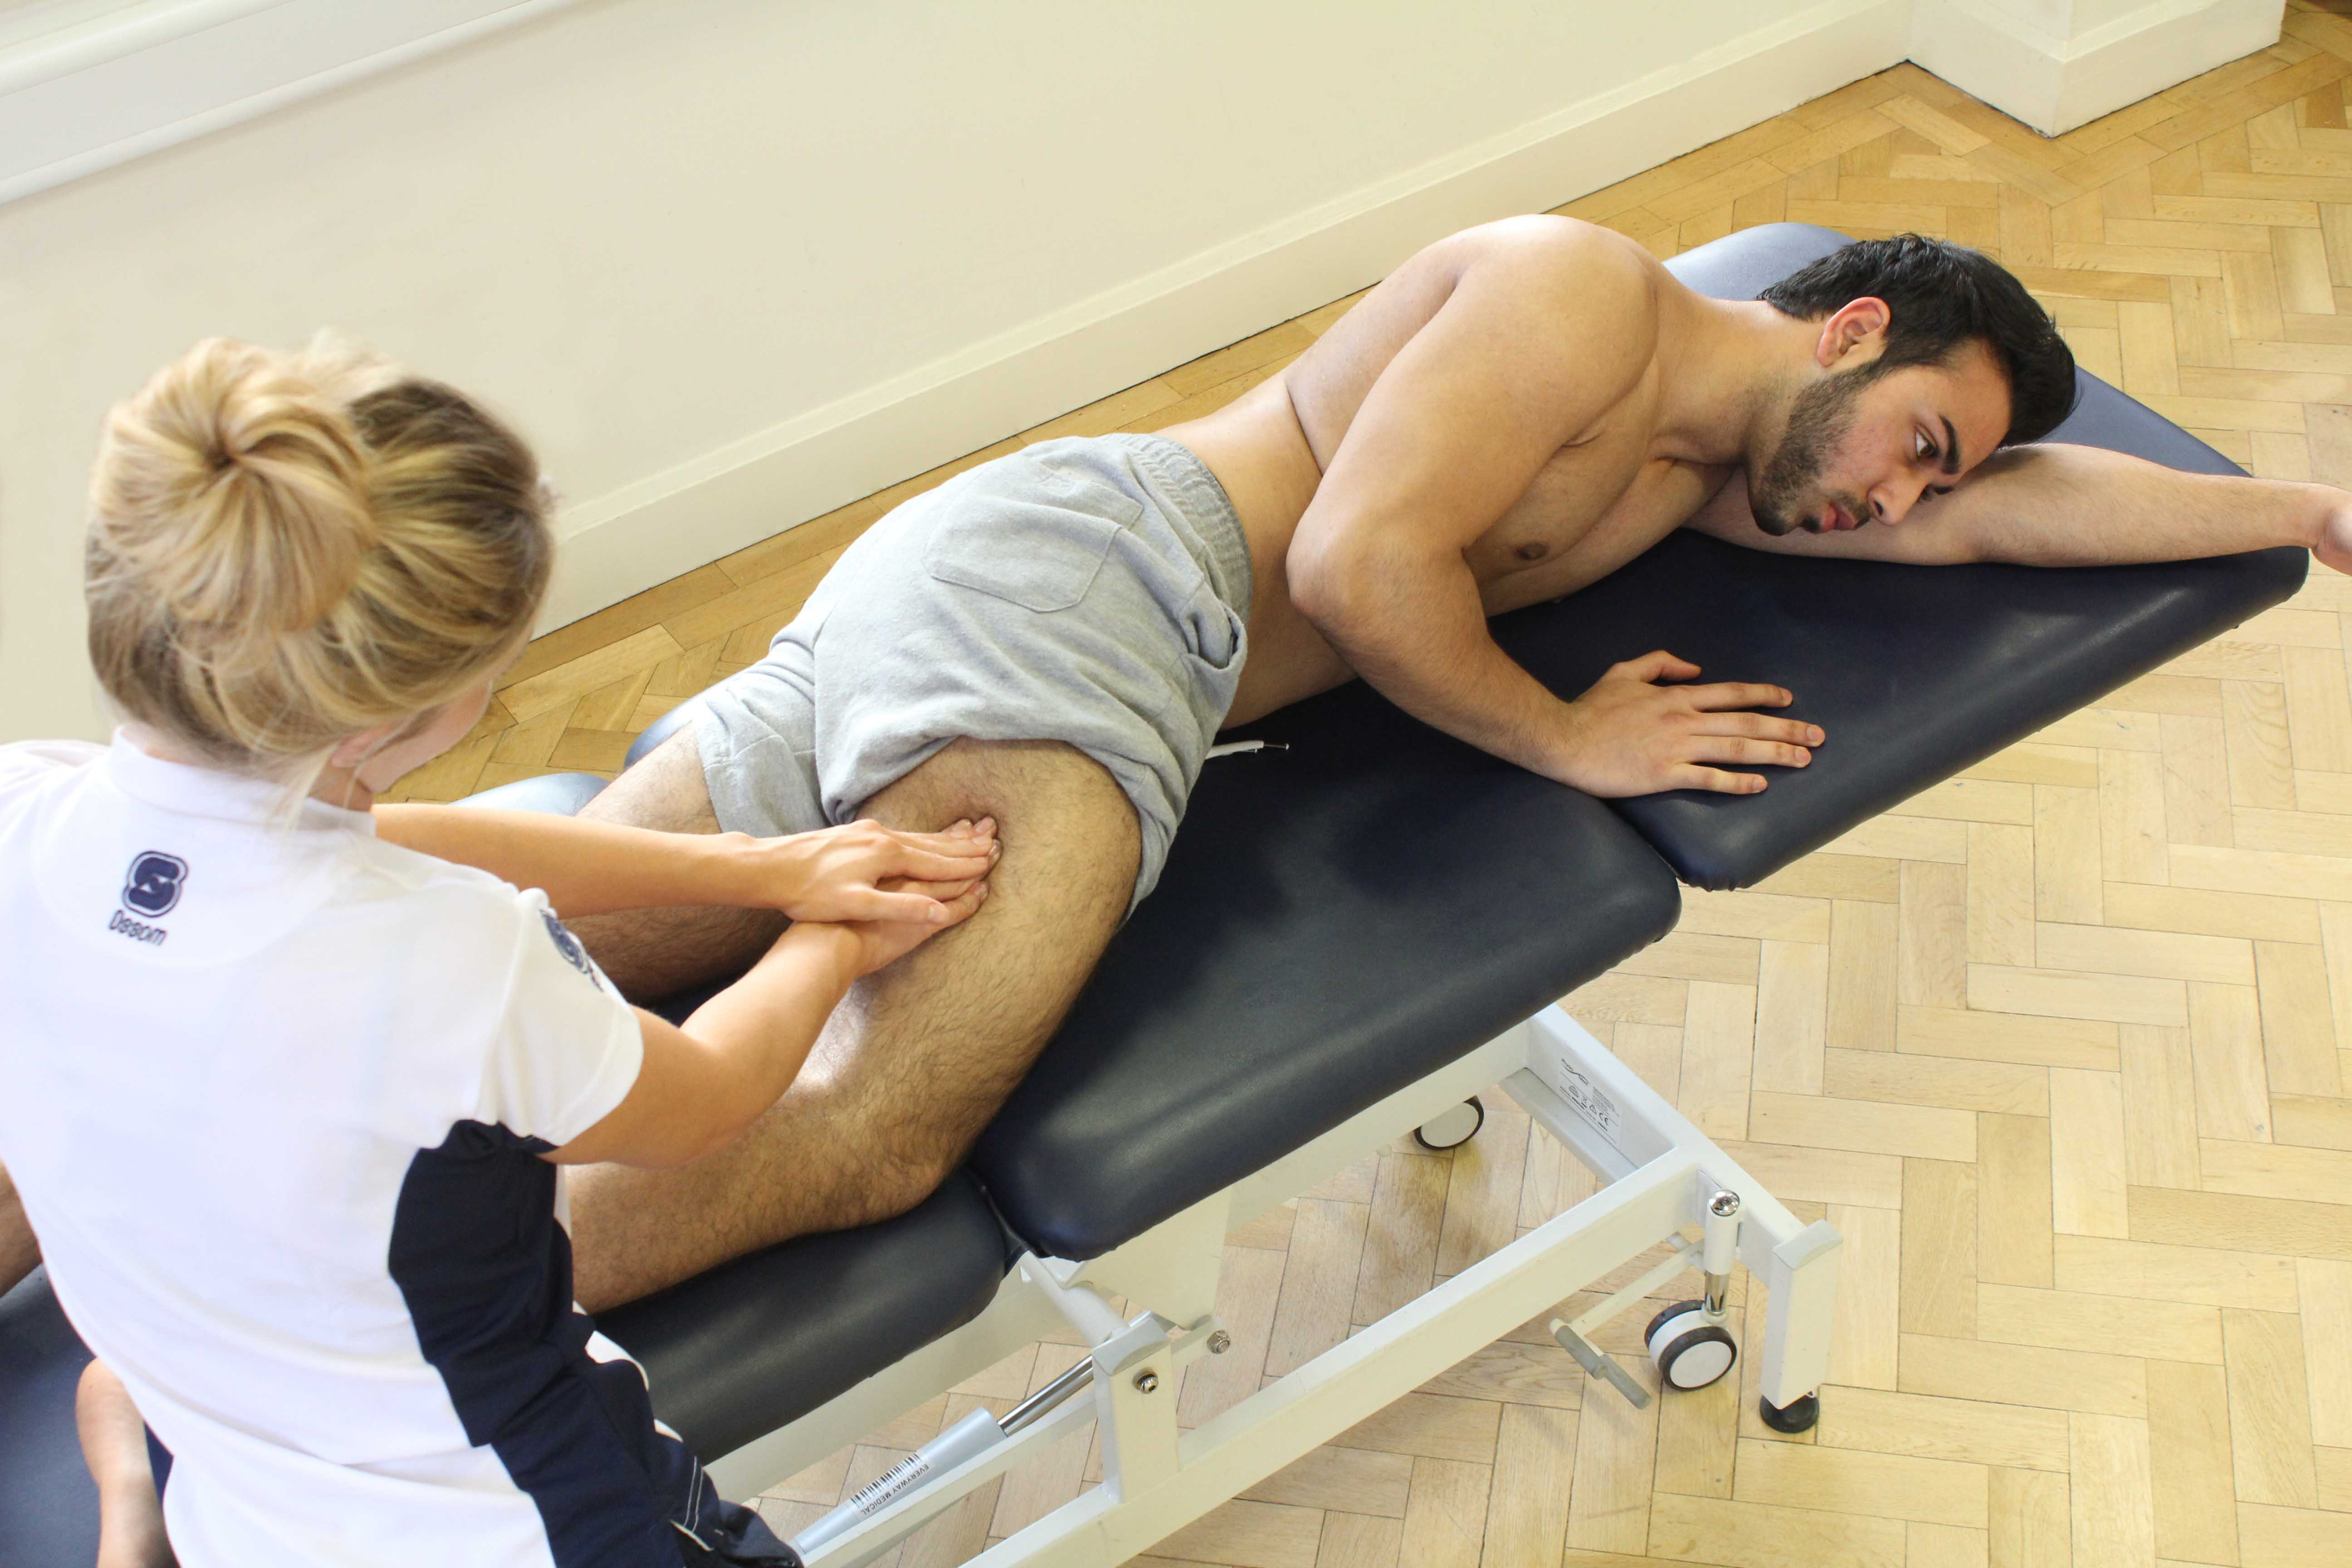 Deep tissue massage of the vastus lateralis following heat treatment